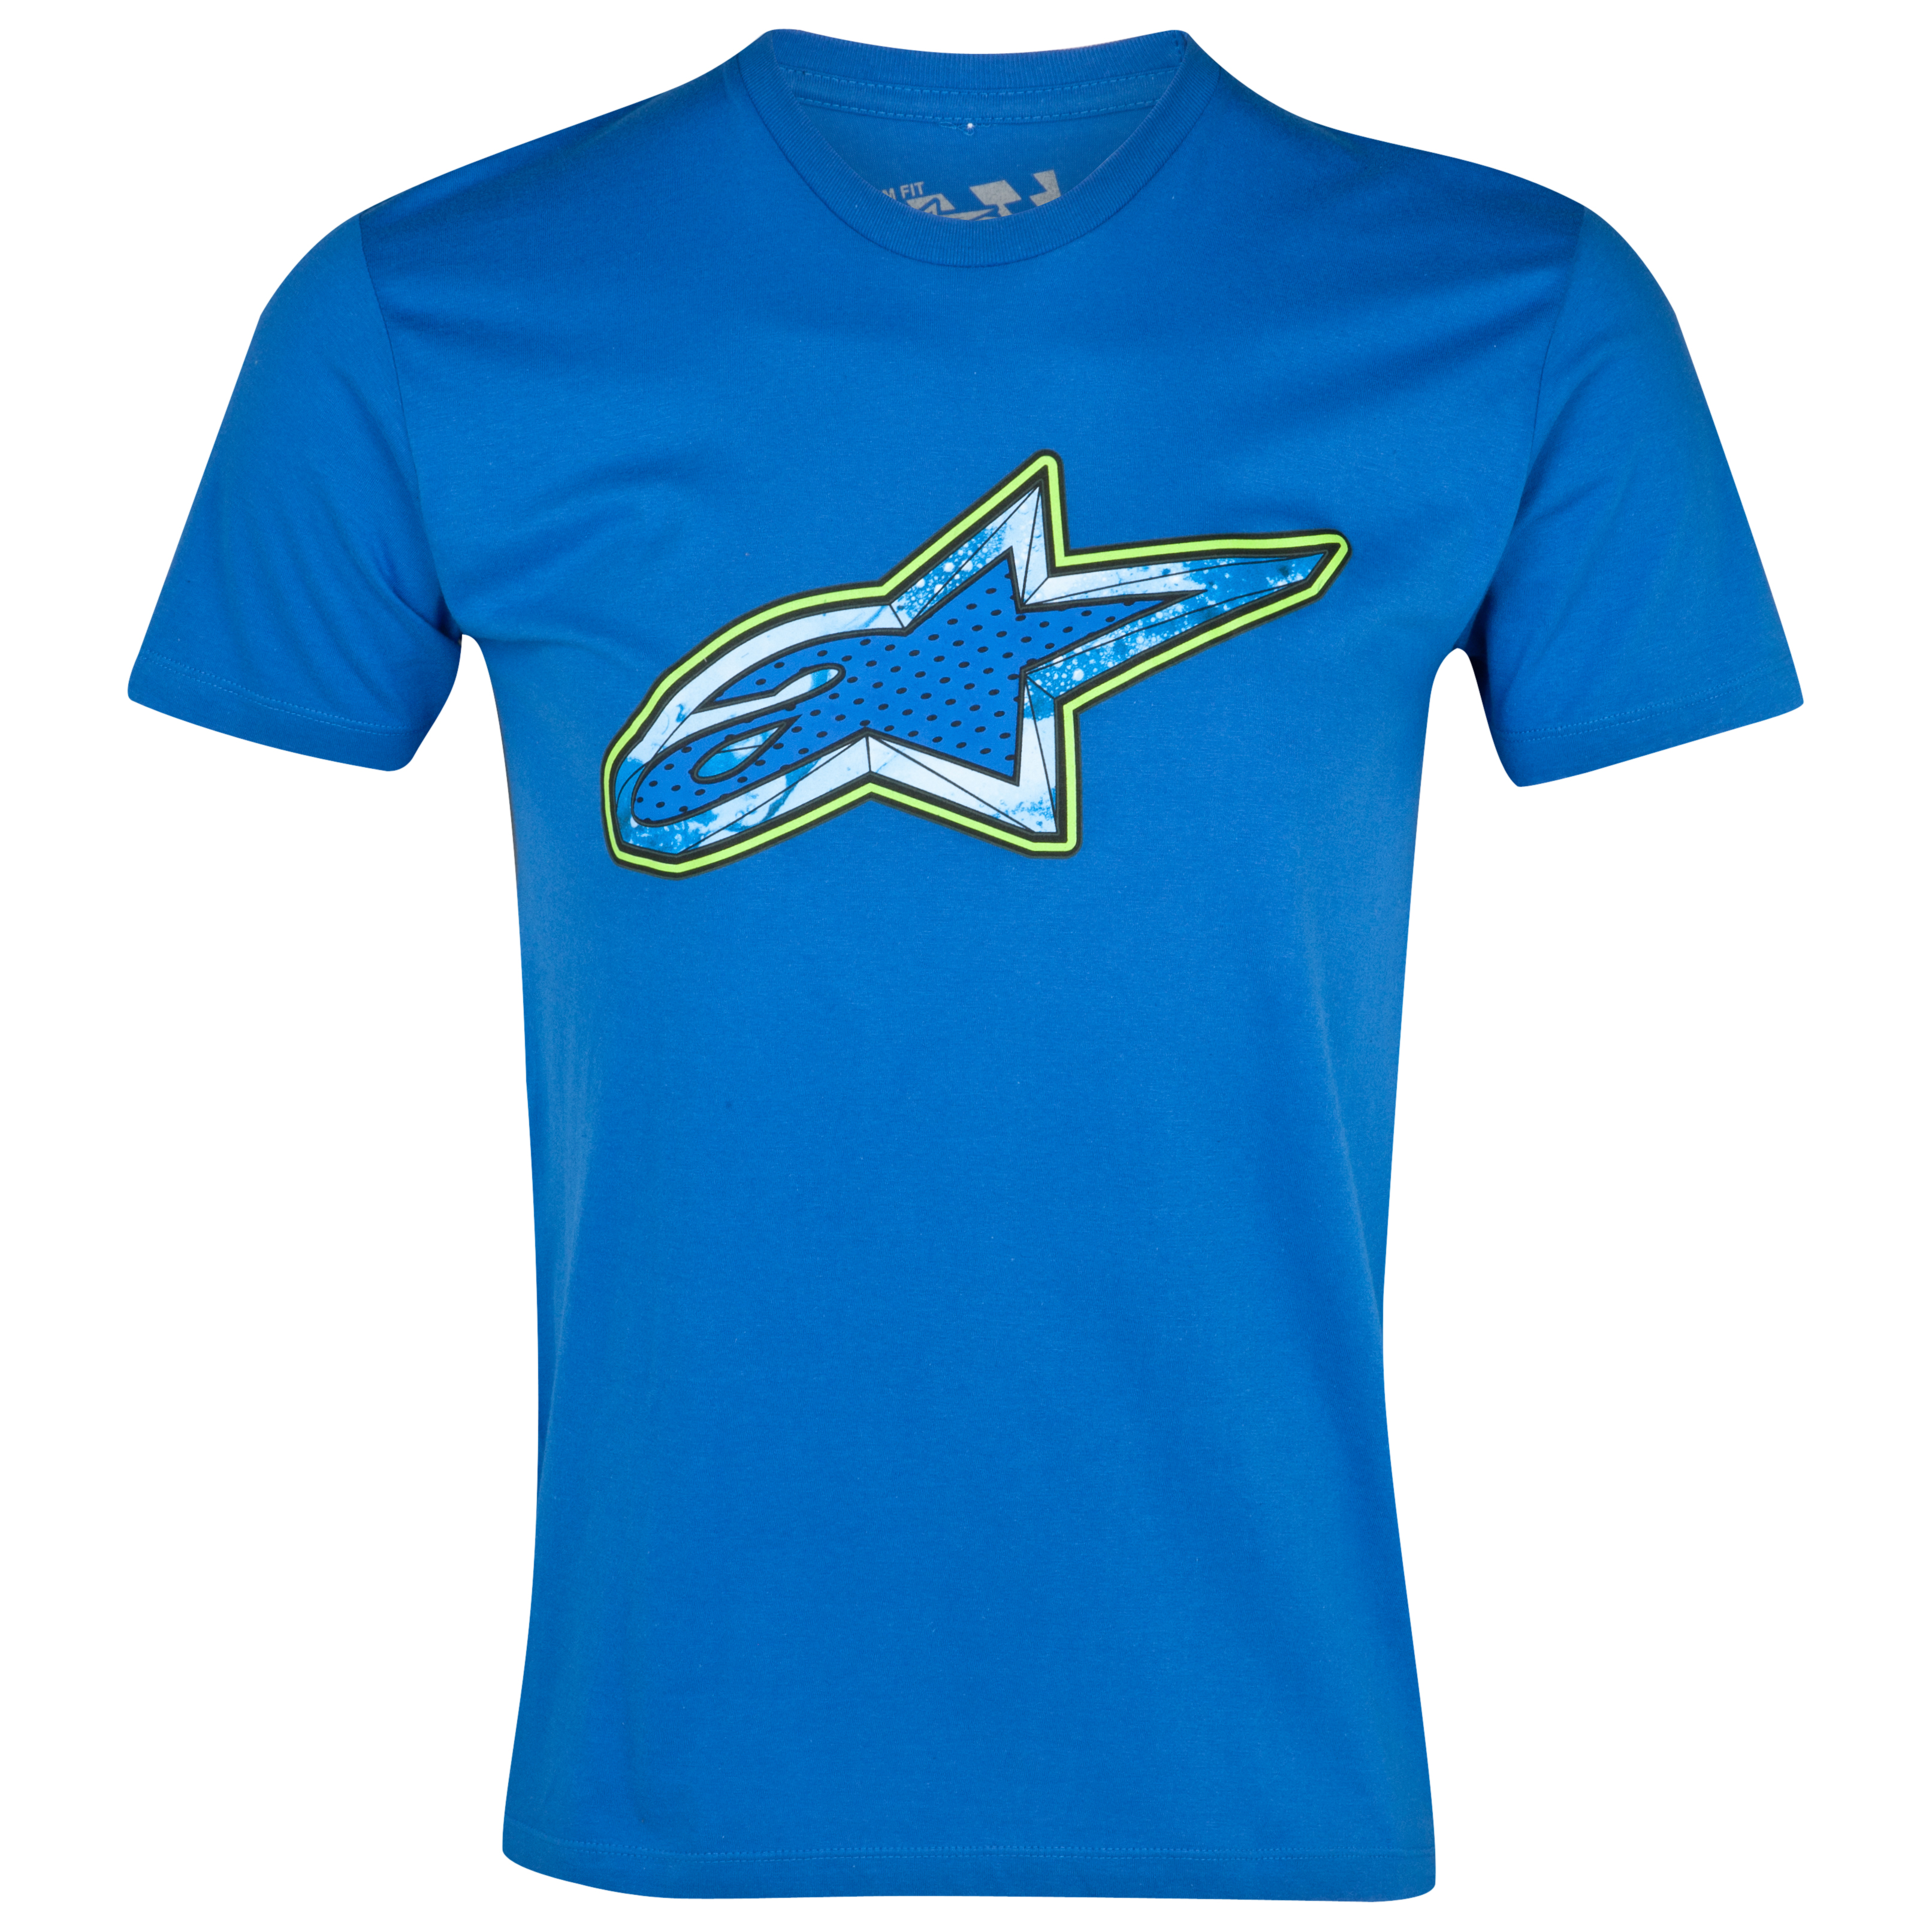 Alpinestars Tech T-Shirt - Royal Blue